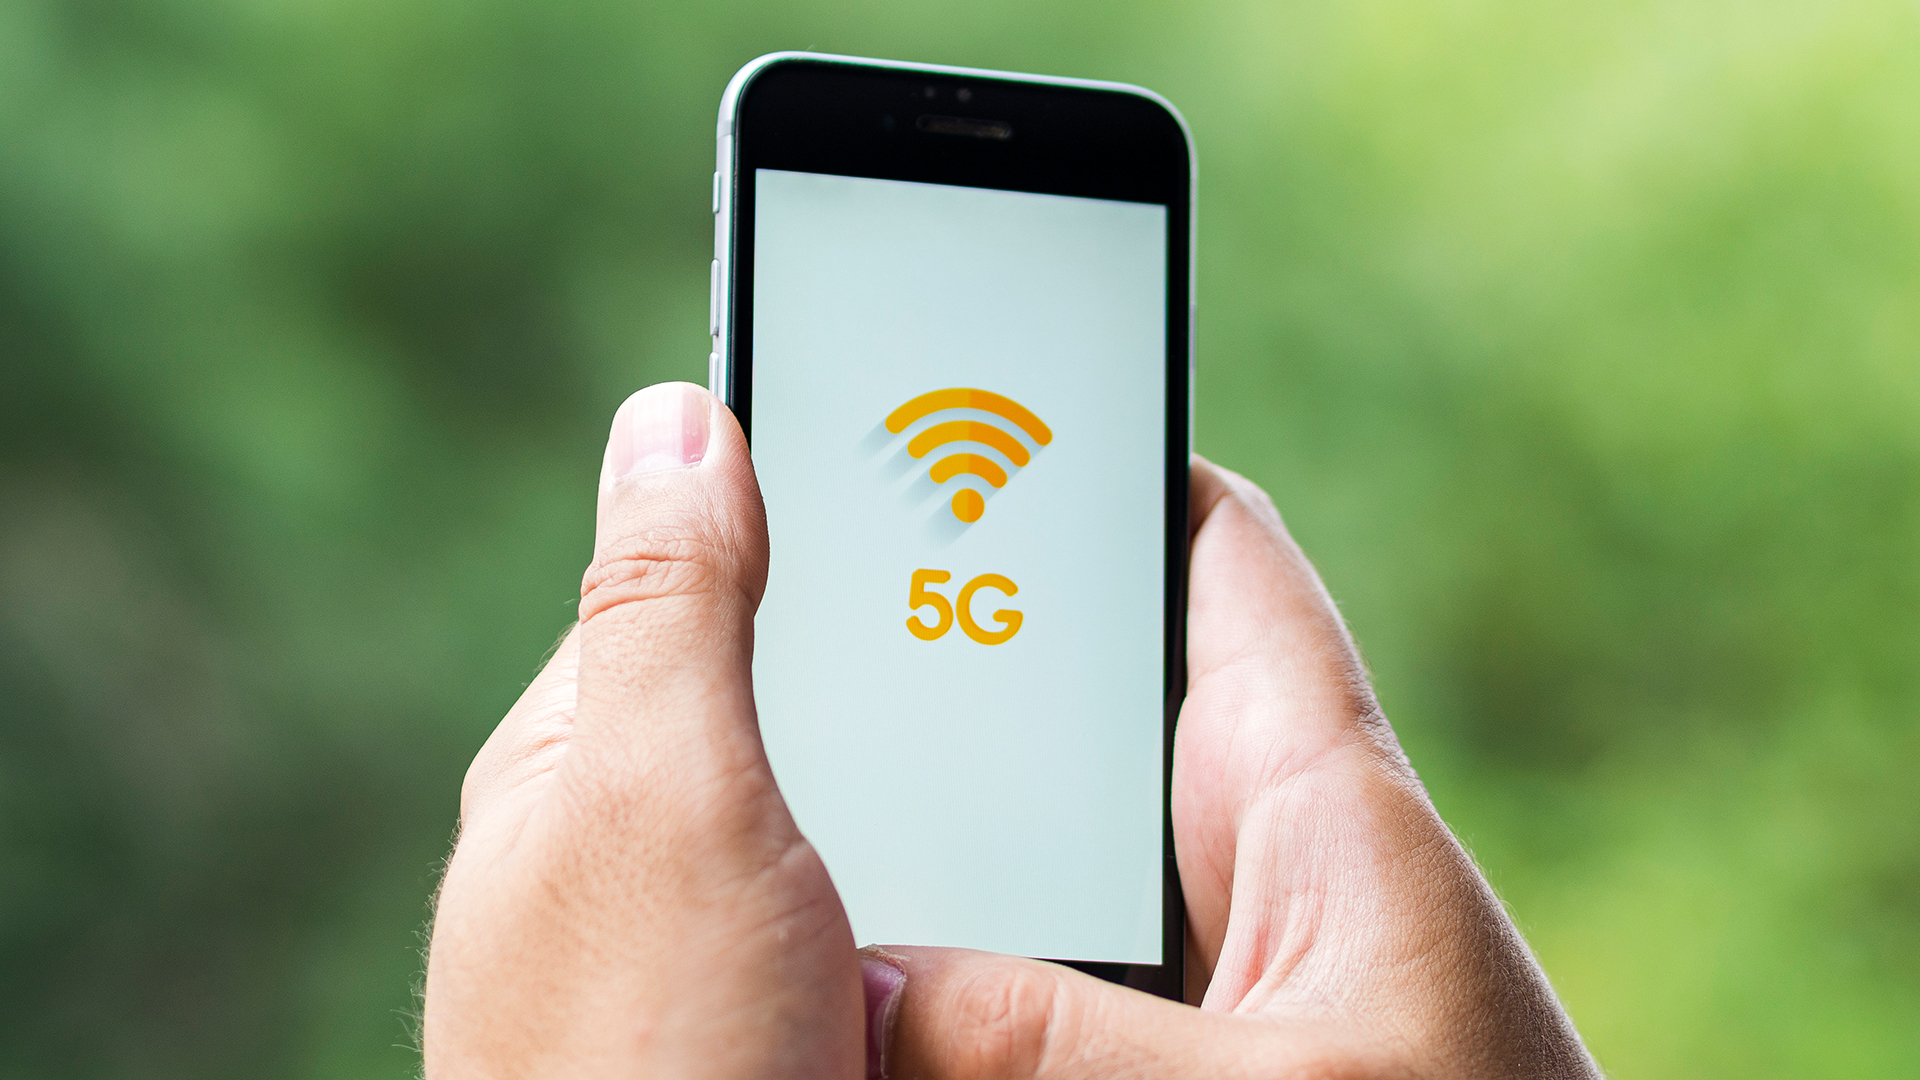 Global 5G experience rankings for H1 2021 released